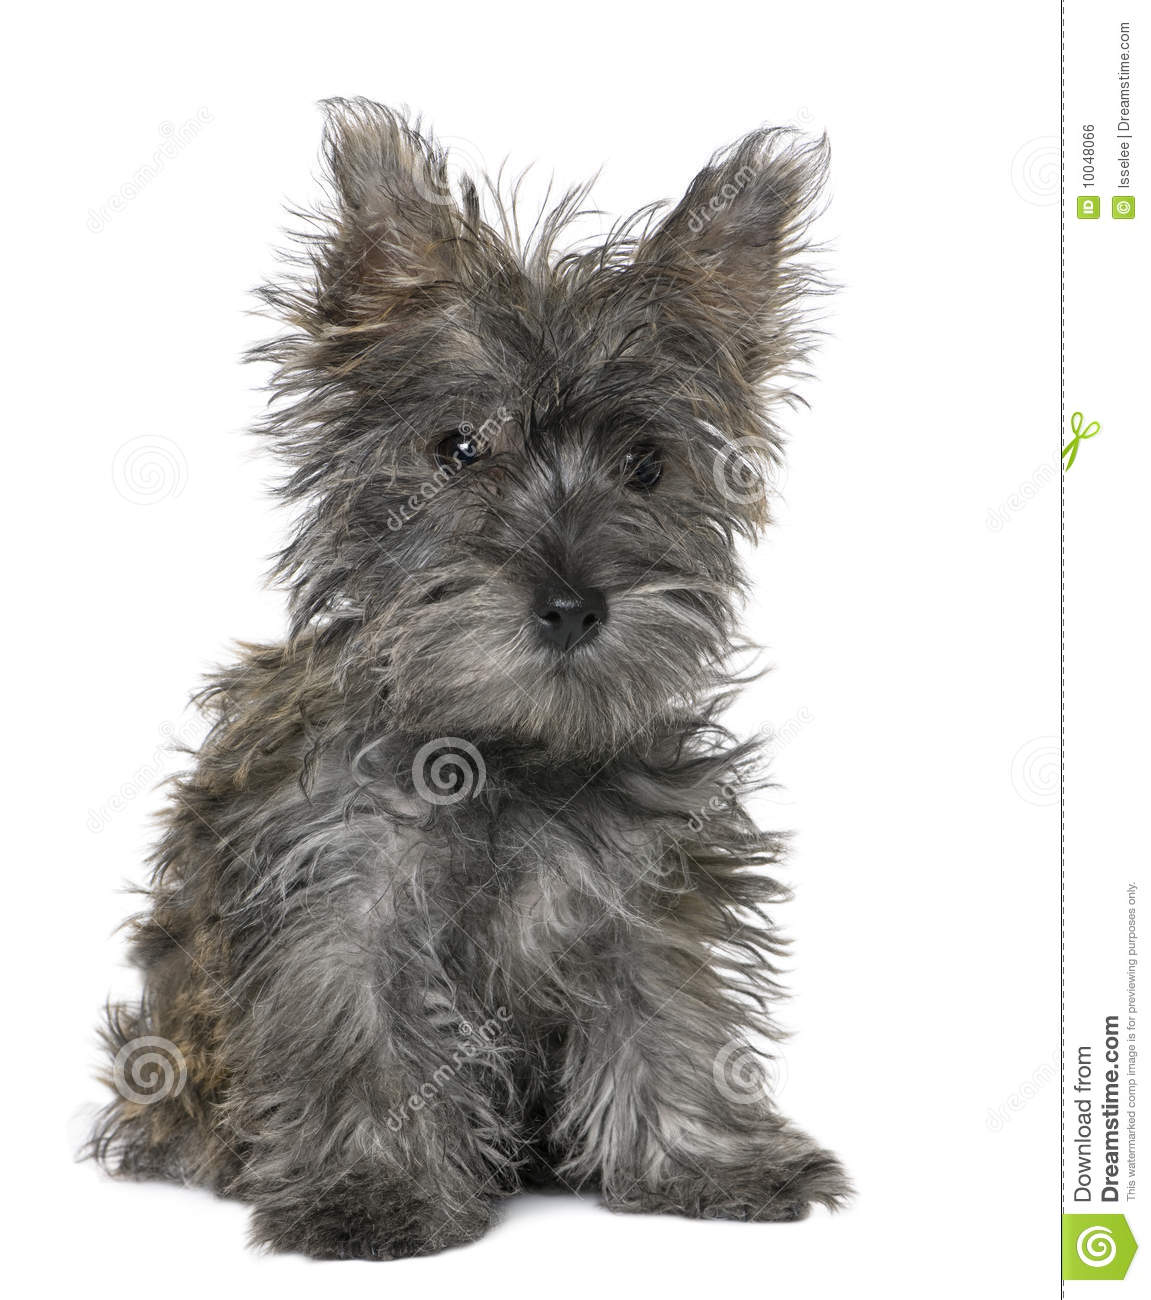 Black Yorkshire Terrier Puppy Sitting Royalty Free Stock ...